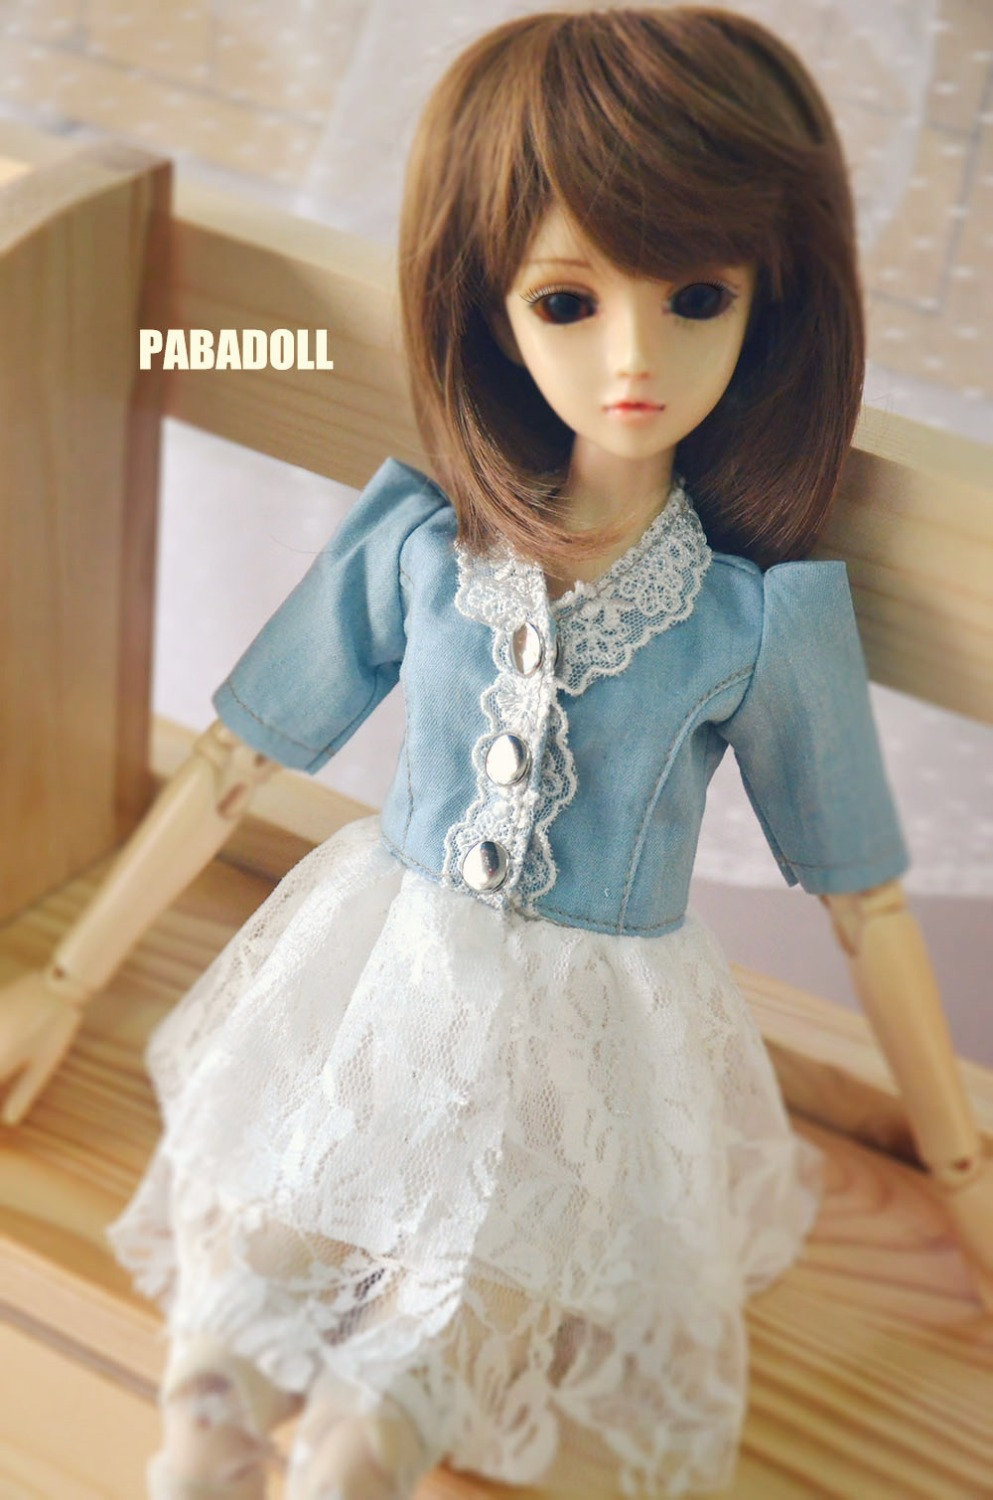 New BJD Doll Jeans Lace Dress for Bjd doll 1/6YOSD 1/4 MSD,1/3,SD10 SD13,SD16 IP EID Luts DOD,SD Doll Clothes CWB21 new handsome fashion stripe black gray coat pants uncle 1 3 1 4 boy sd10 girl bjd doll sd msd clothes